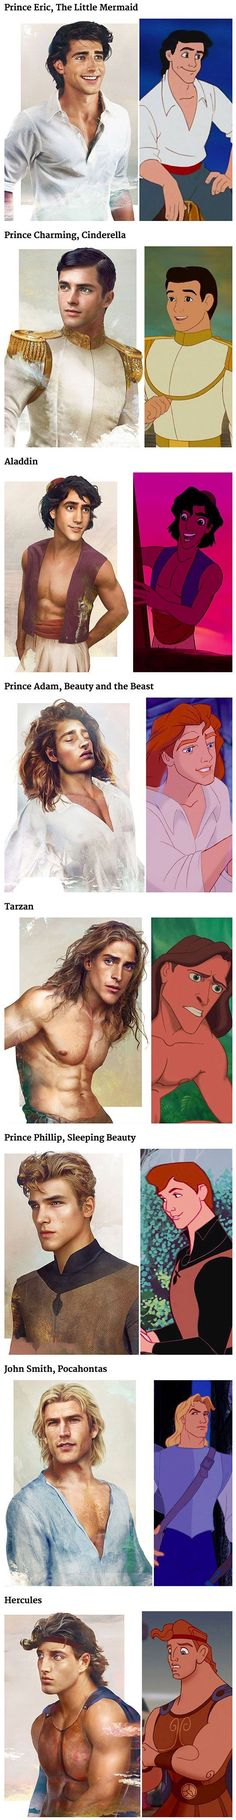 If you've ever wondered what Disney's princes might have looked like in real life, Jirka Väätäinen, a Finnish artist and designer in Melbourne, has answered that question definitively with his series of real-life Disney prince illustrations. Disney Pixar, Arte Disney, Disney Memes, Disney Quotes, Disney And Dreamworks, Disney Love, Disney Magic, Funny Disney, Disney Stuff